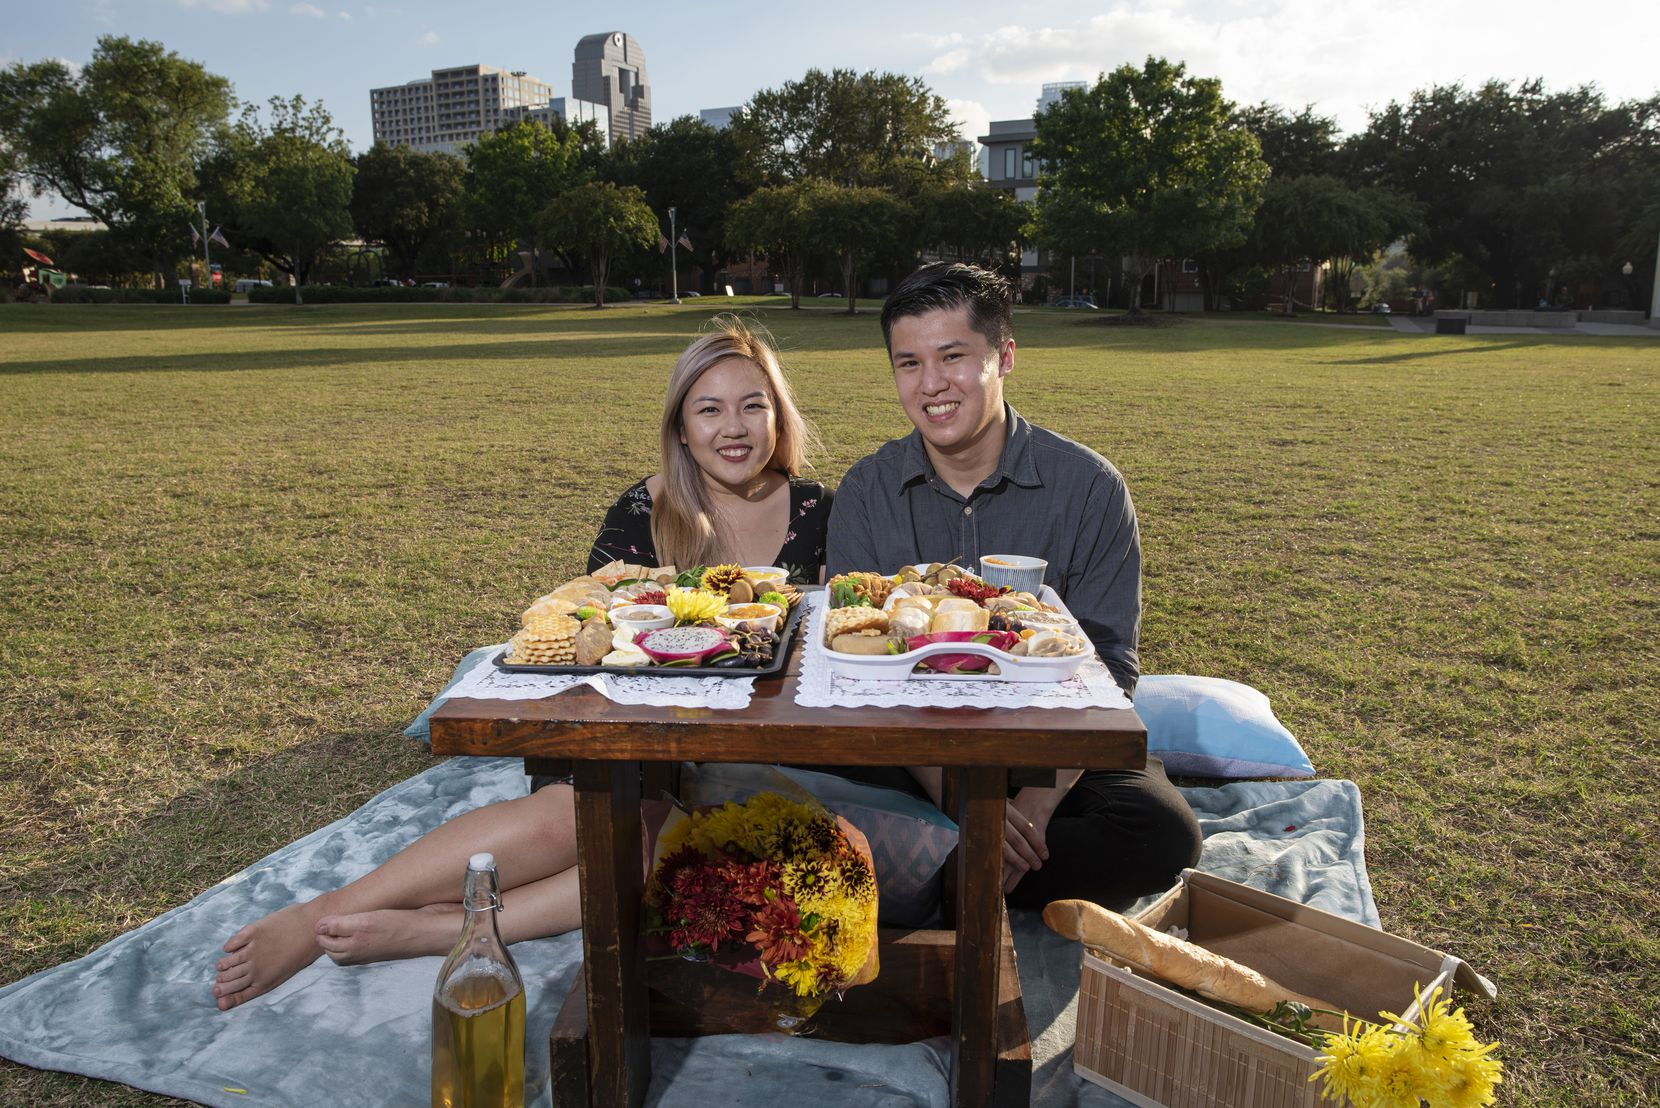 Chả Cutie co-owners Violet Huynh, 23, of Garland, and Gavin Seto, 26, of Richardson, with samples of their Vietnamese charcuterie